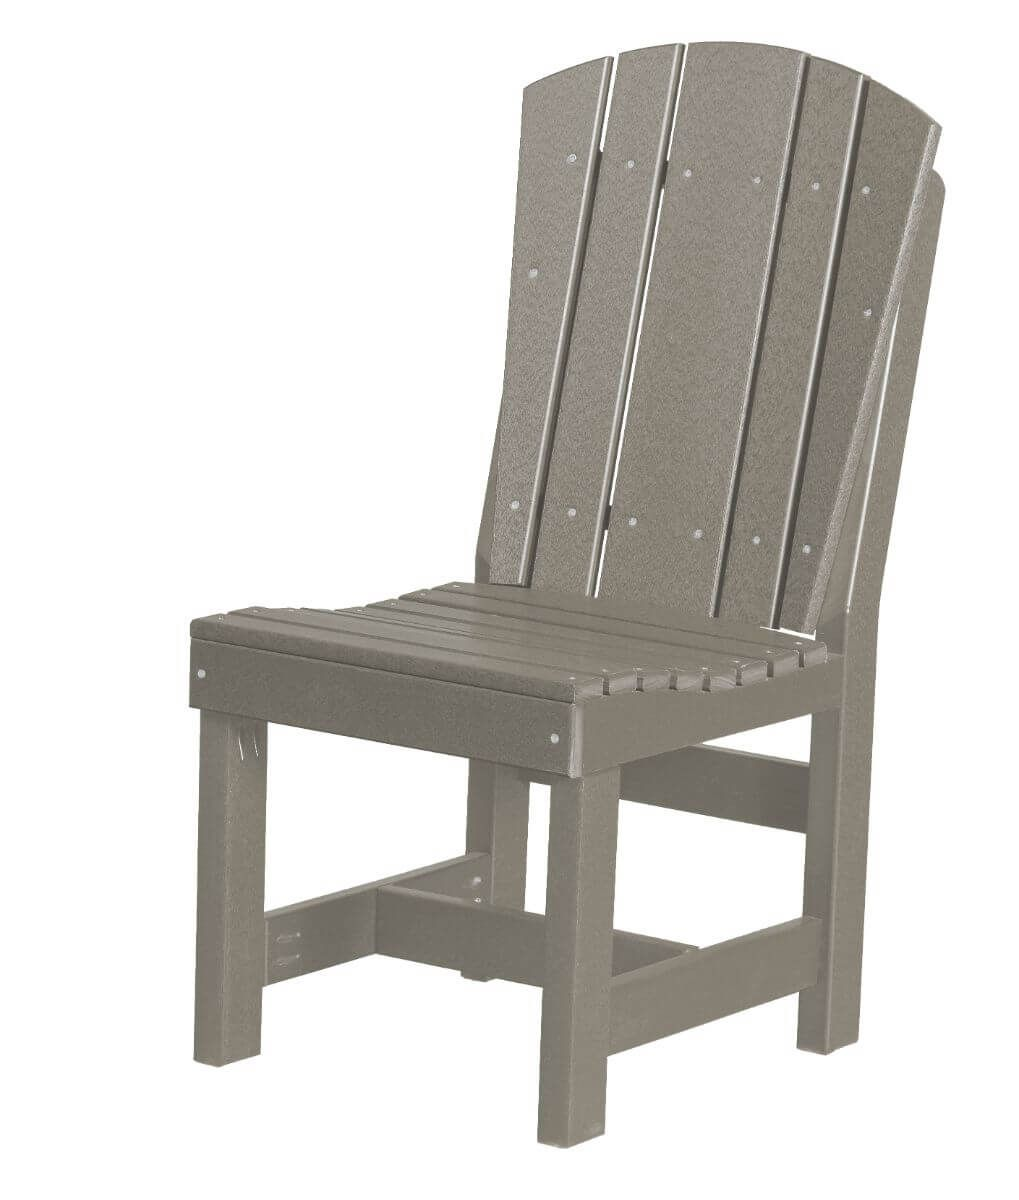 Light Gray Oristano Outdoor Dining Chair